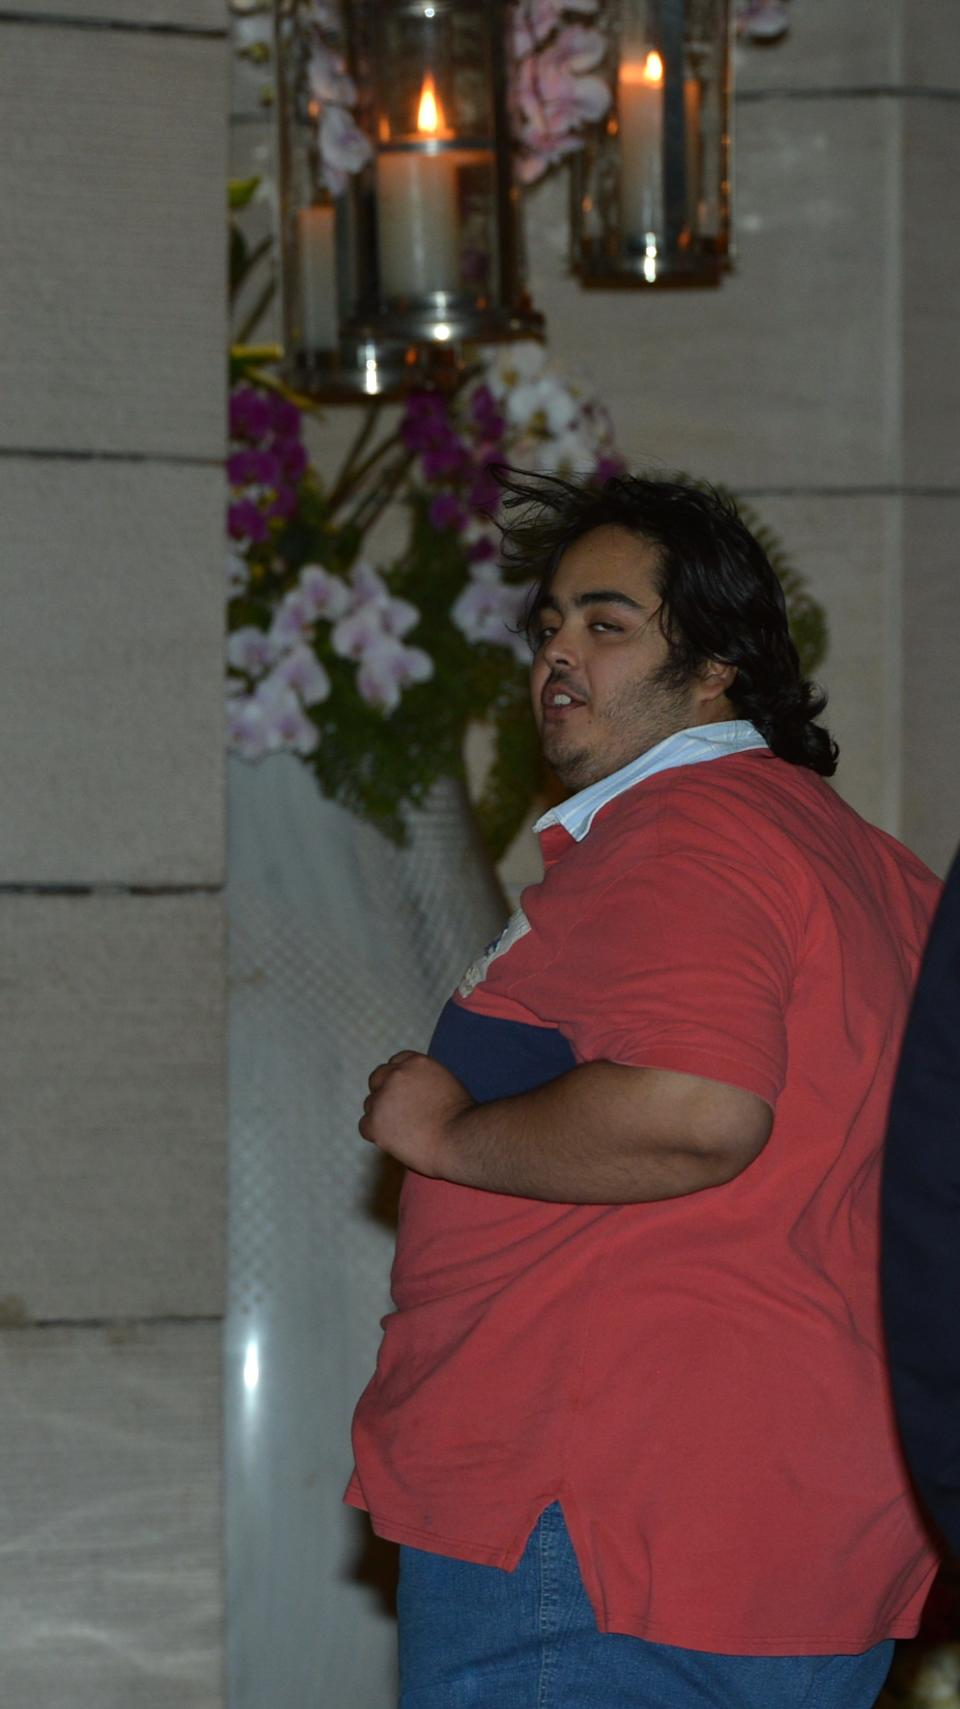 MUMBAI, INDIA ? JANUARY 05: Mukesh Ambani and Nita Ambani's son Anant at his cousin Nayantara's engagement party in Antilla in Mumbai on Saturday, January 5, 2013. (Photo by Bhaskar Paul/India Today Group/Getty Images)